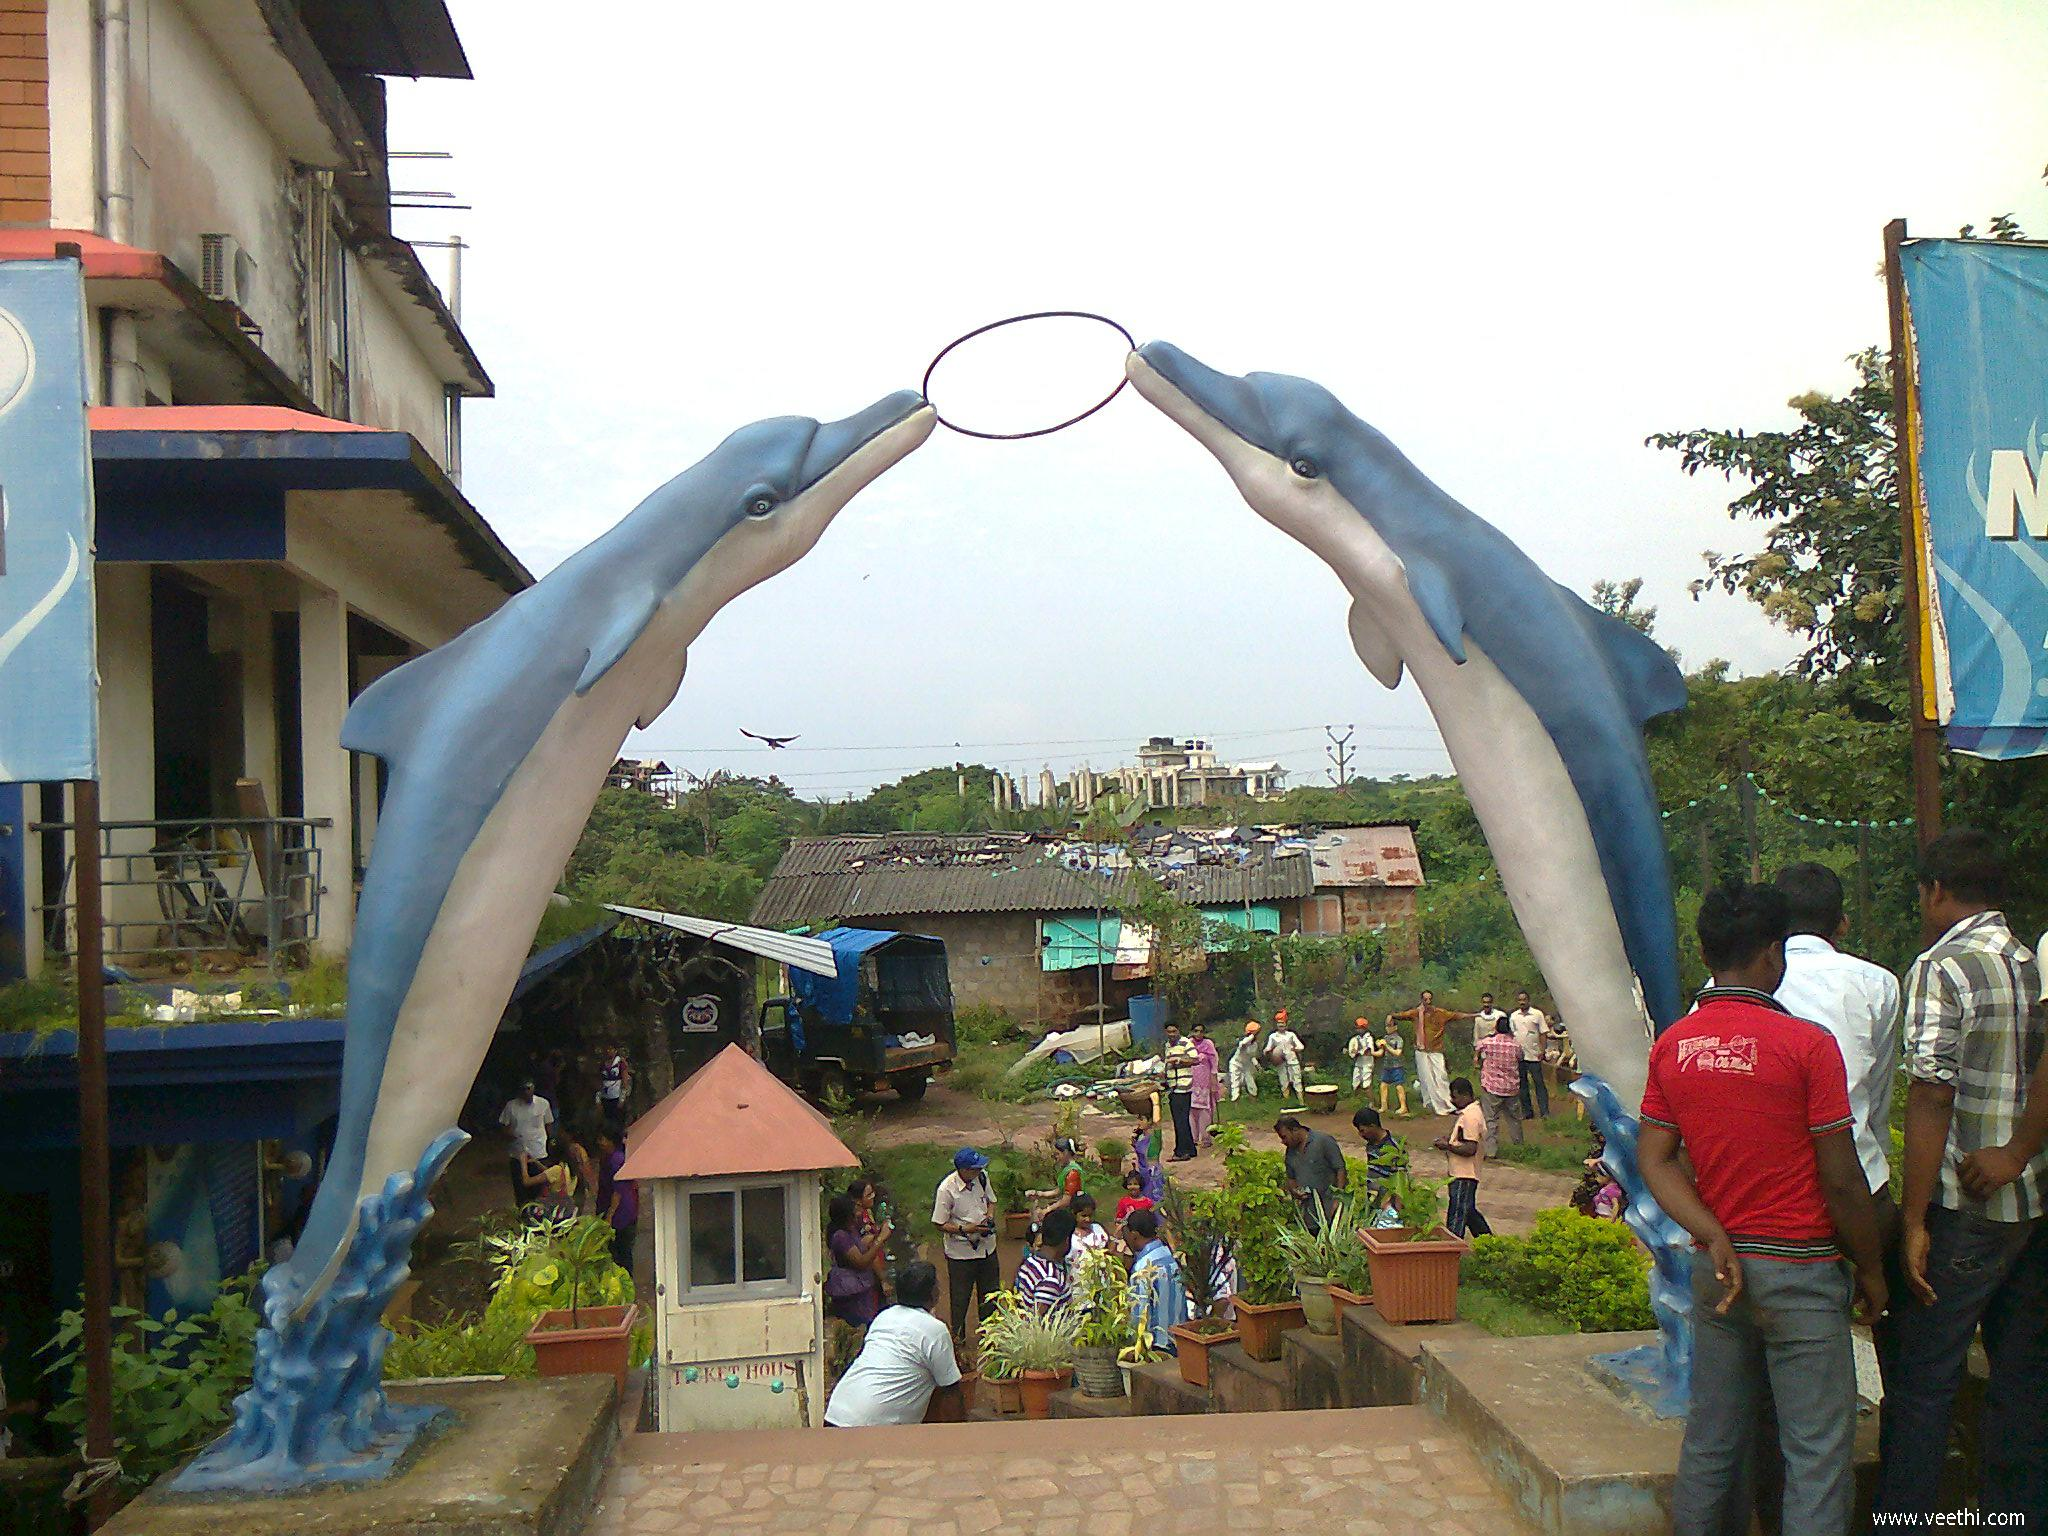 Fish aquarium verna goa - Entrance Of Abyss Marine Fish Aquarium Goa